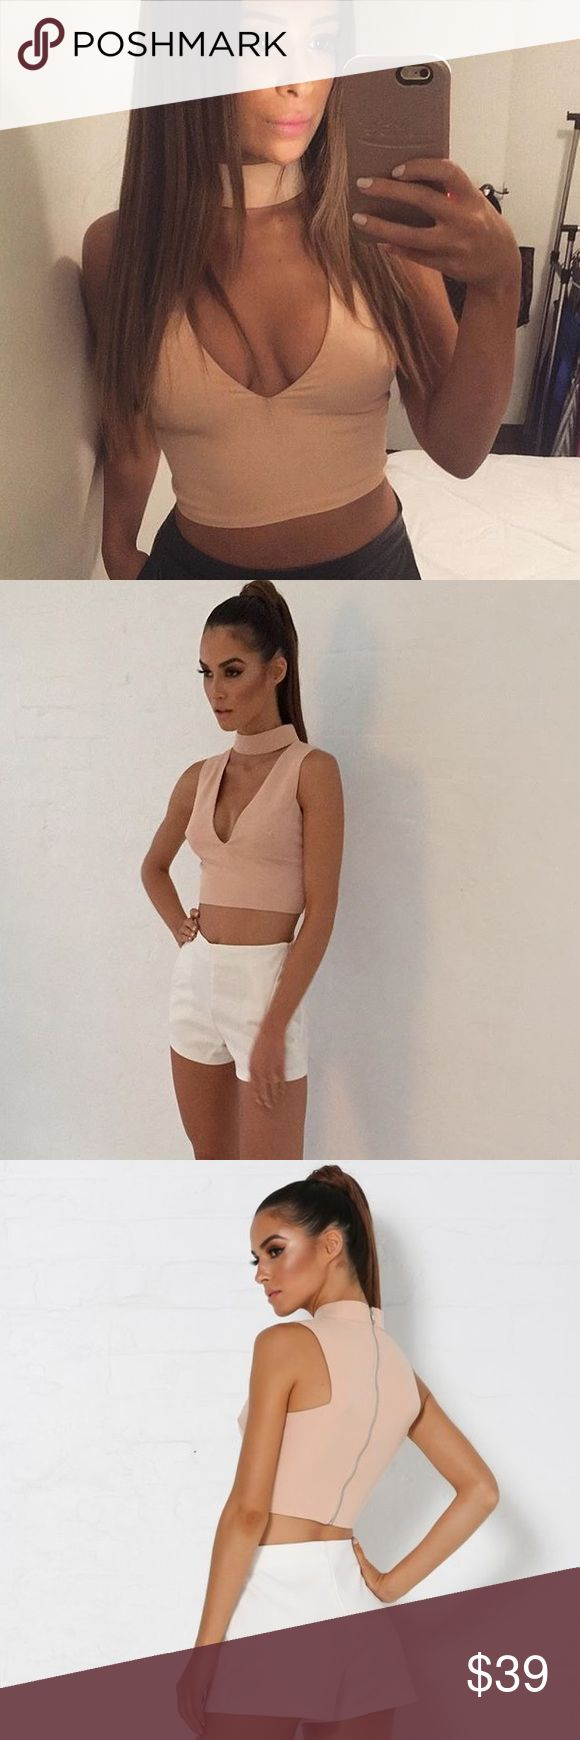 • Nude Zip Back Crop Top ✨ NWT! Comes in plastic! ✨ Zip in back! ✨ Shorts the model is wearing is also for sale. The listing is in my closet and they are a size large as well❤ ✨ Price is firm @ $39! ✨ Be advised that prices are more than firm on here and that any offer will not be accepted! Will sell cheaper on my Vinted account. Username is xo_a.lyn.w_xo. Download the app and find me. XO💖 ✖️NOT Missguided! Put for exposure✖️ Missguided Tops Crop Tops